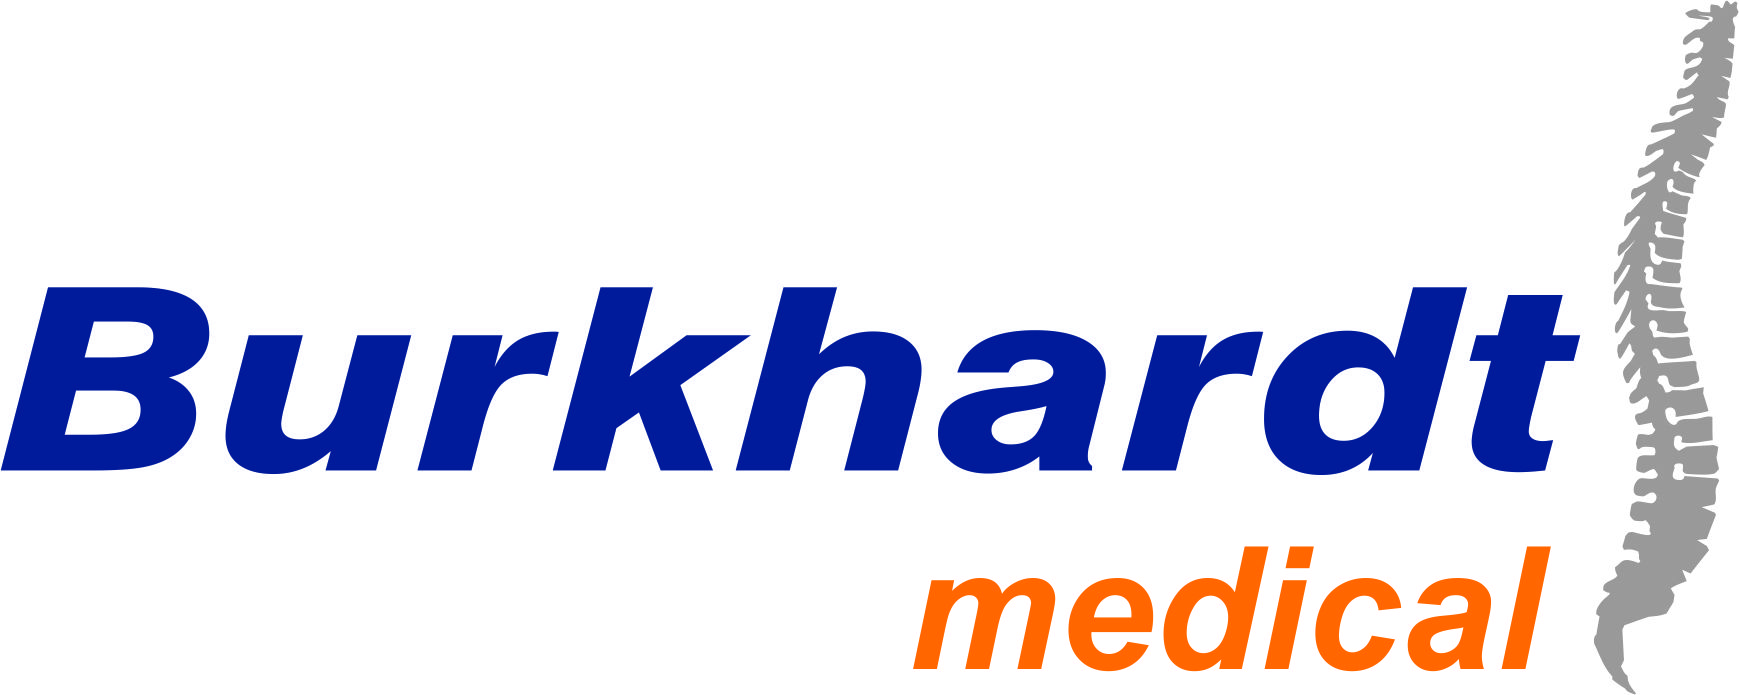 Burkhardt medical